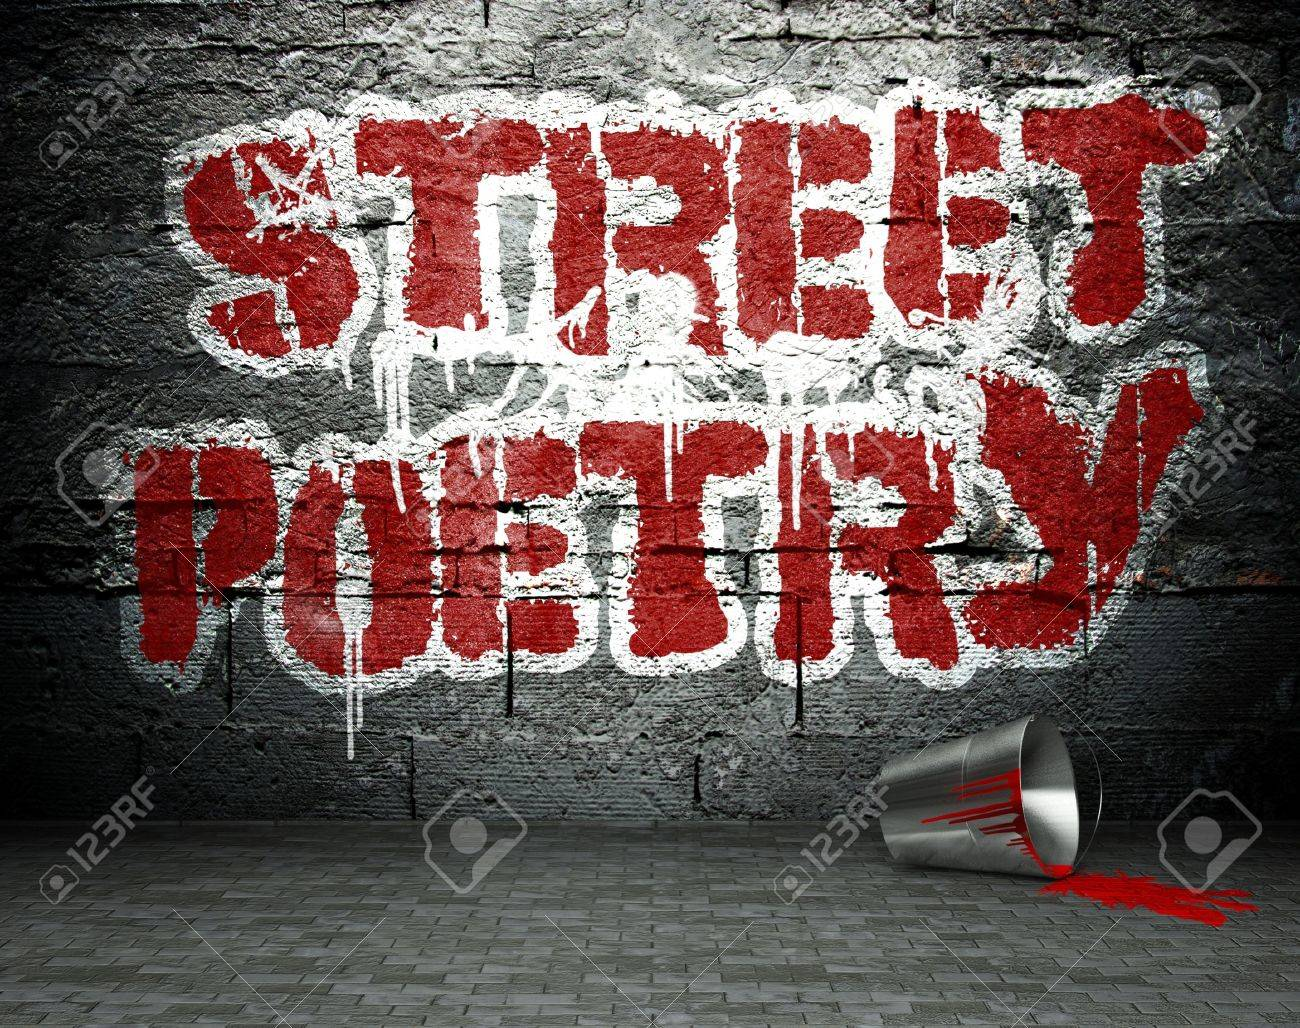 Graffiti wall with poetry, street art background Stock Photo - 25334247